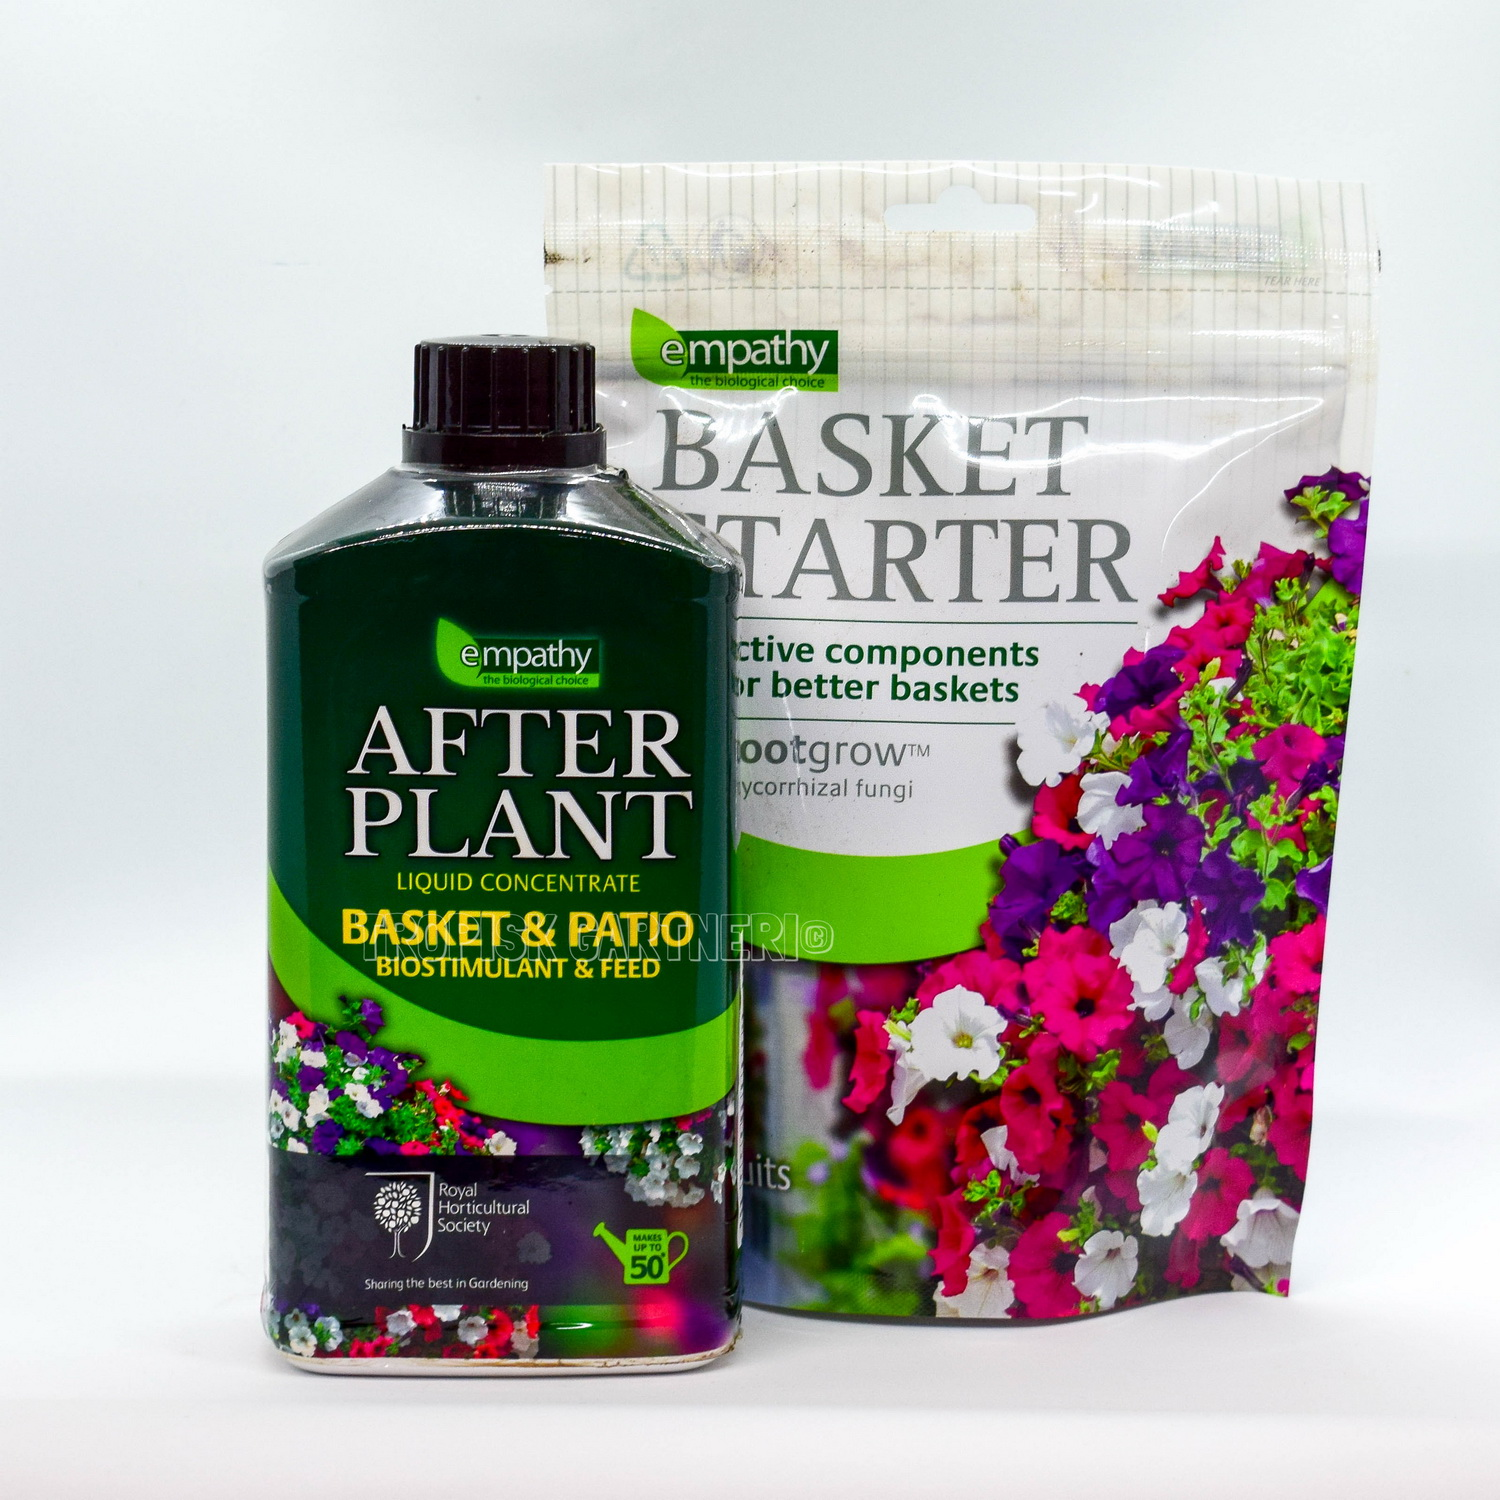 BASKET STARTER med mycorrhizal fungi + After Plant BASKET & PATIO